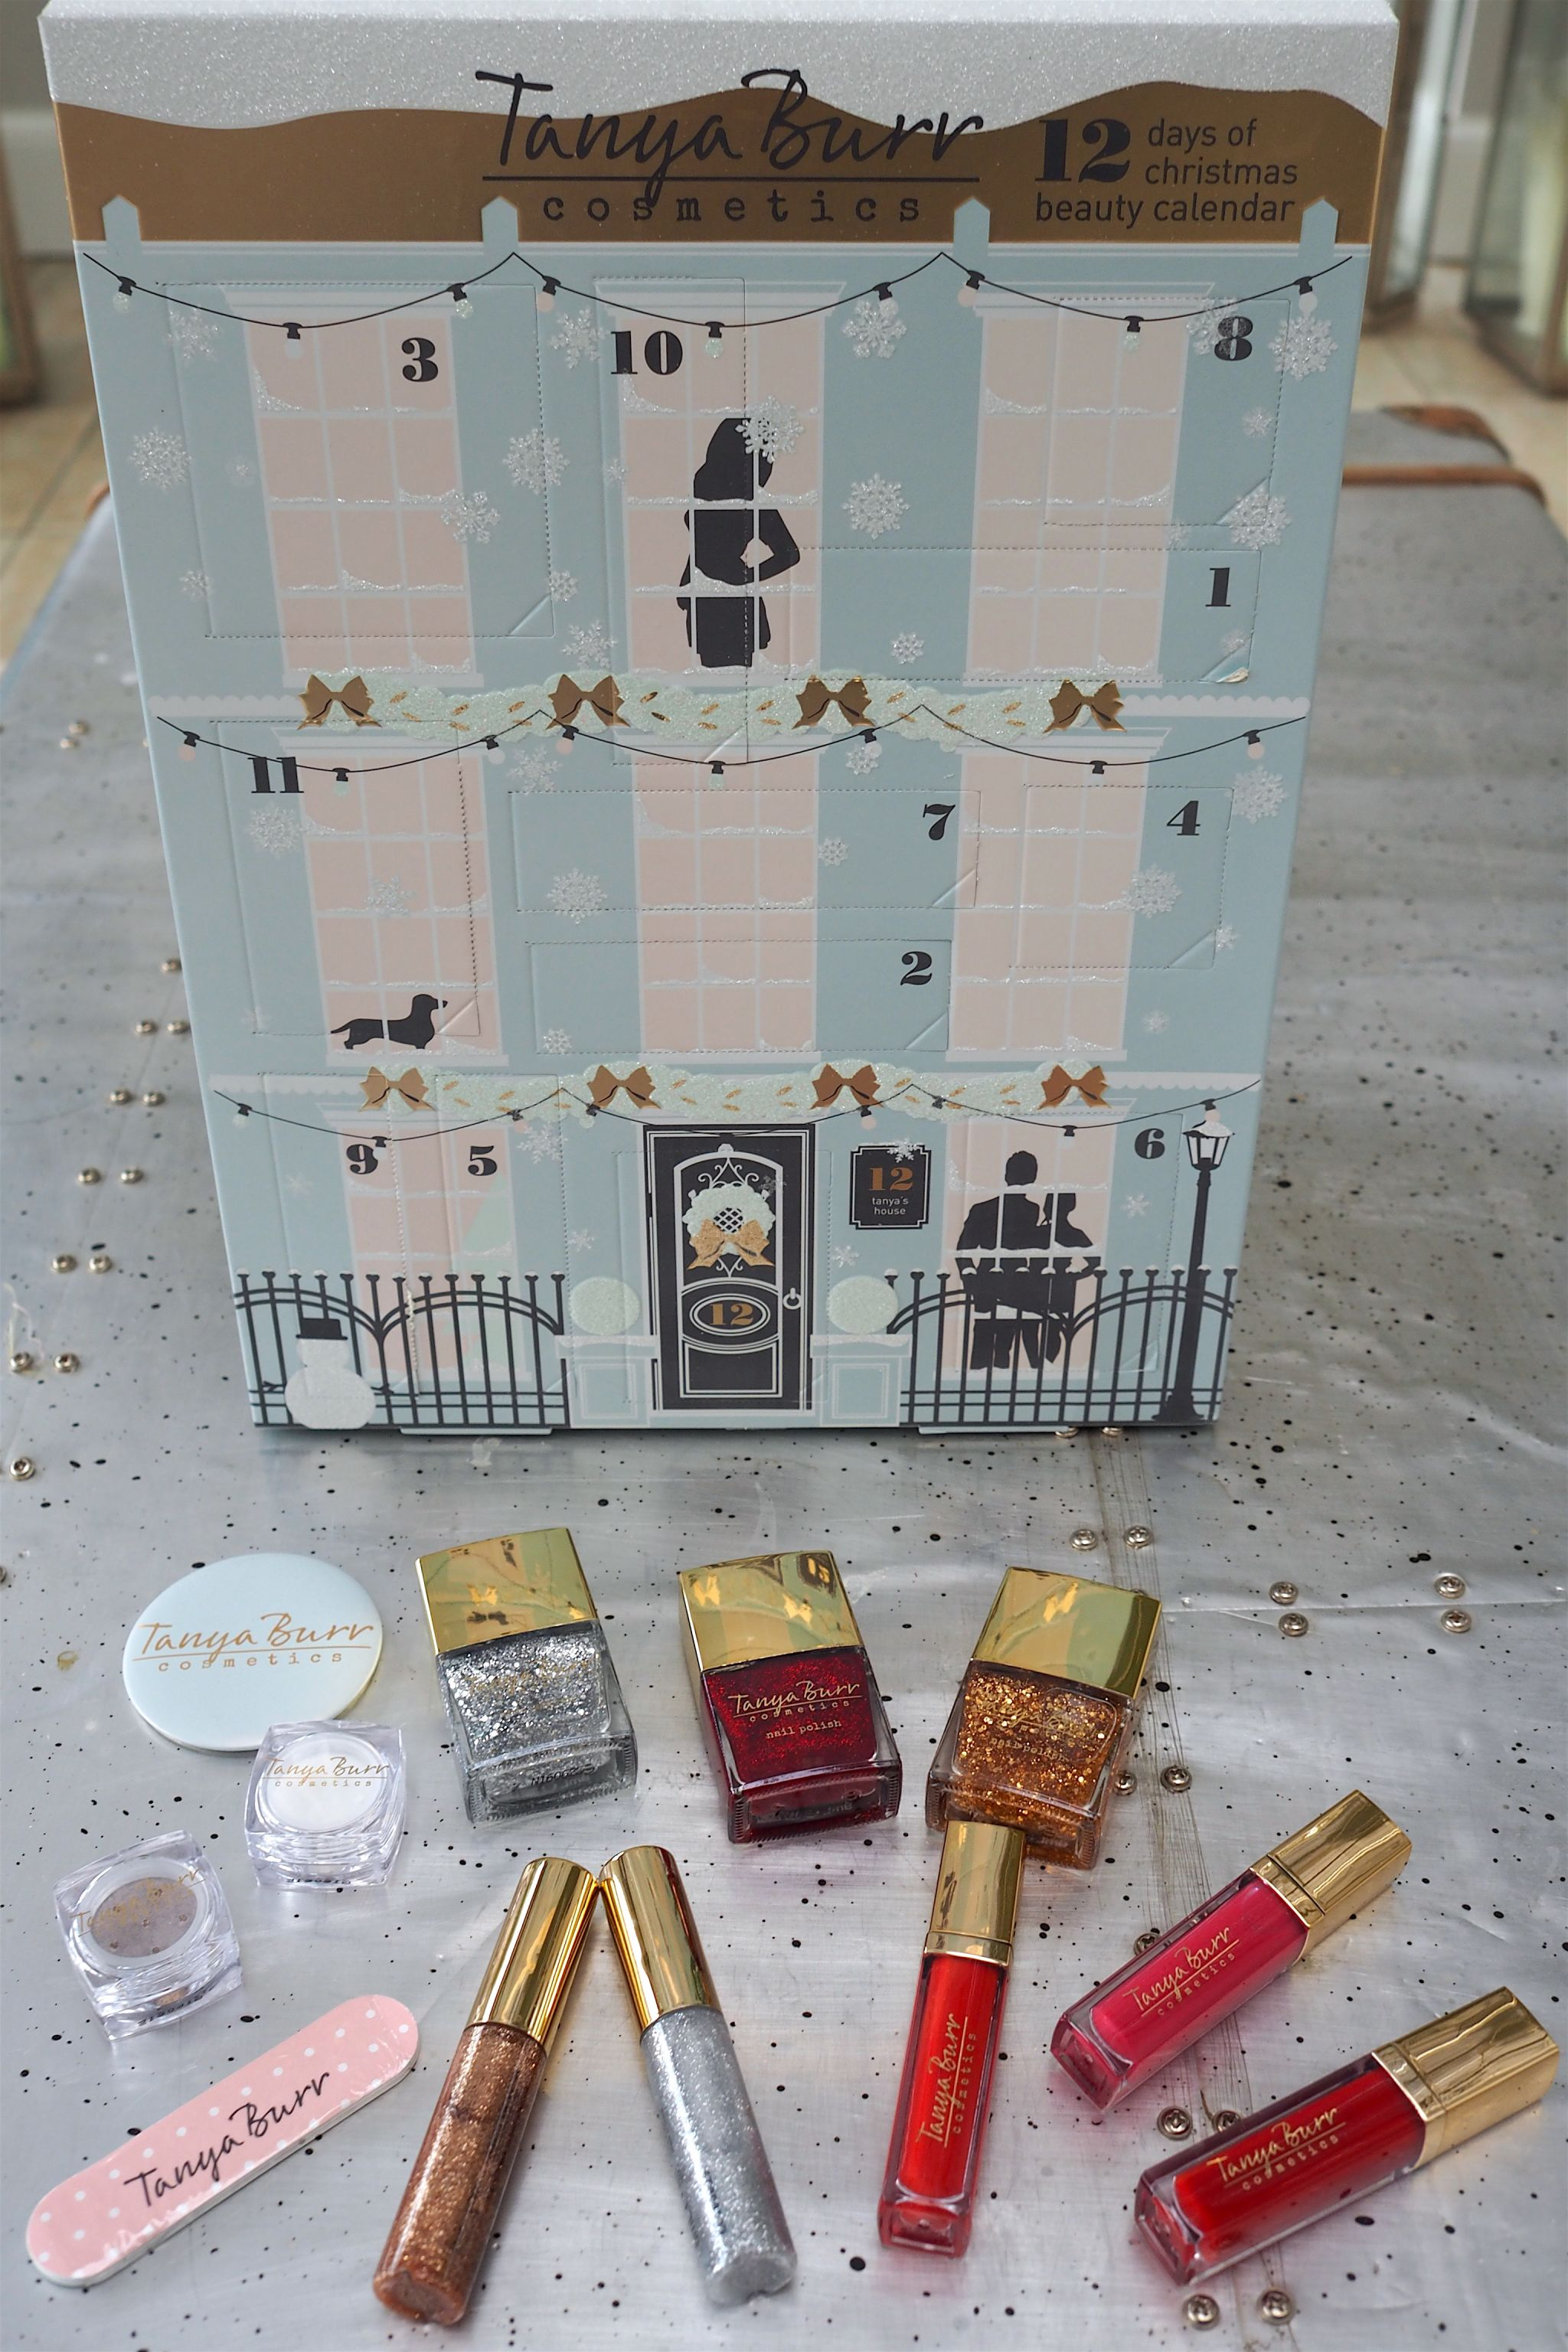 tanya_burr_advent_calendar_1